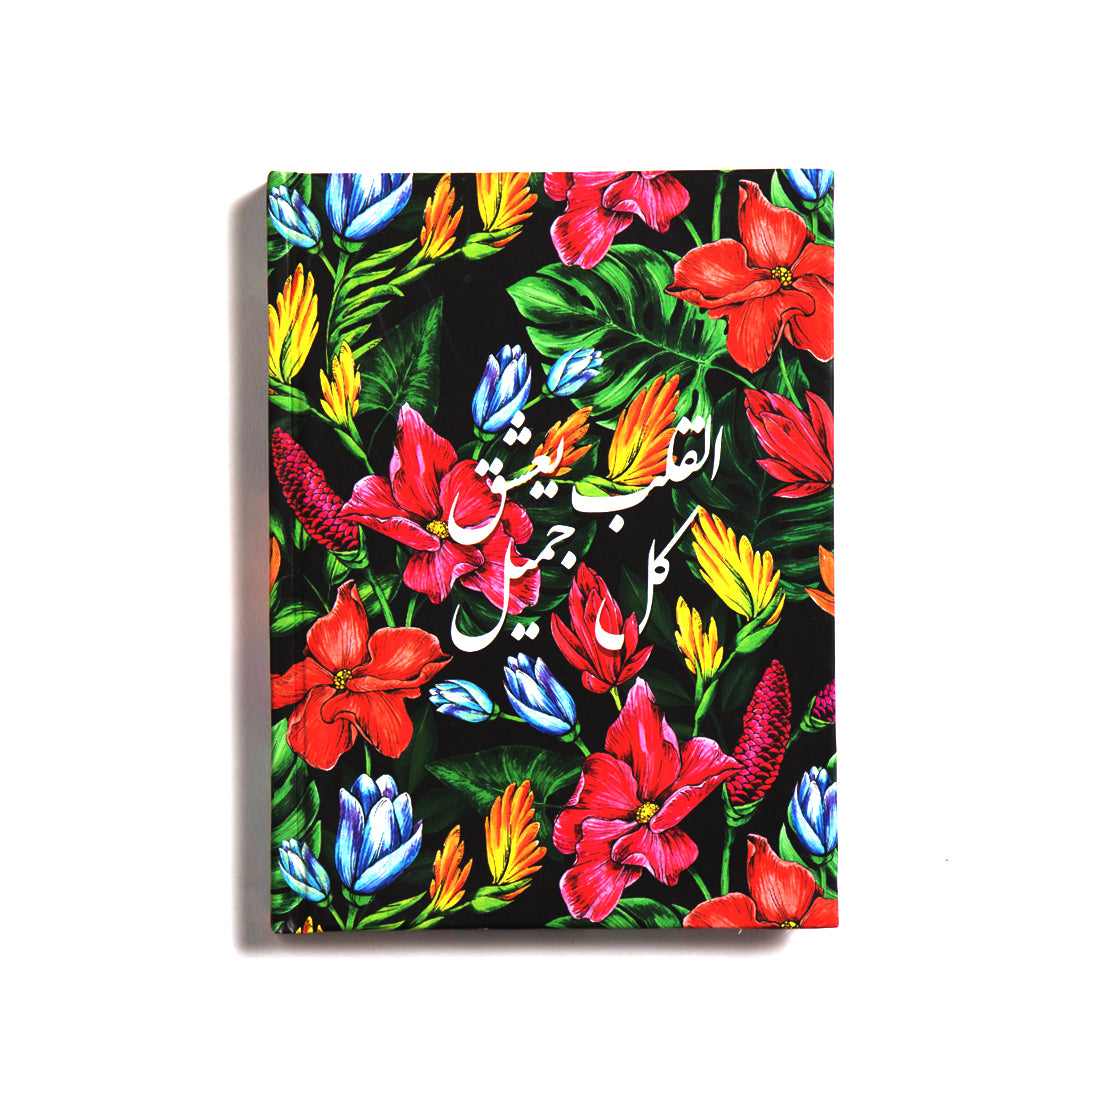 Floral Arabic 1  Notebook Hardcover A6 Size